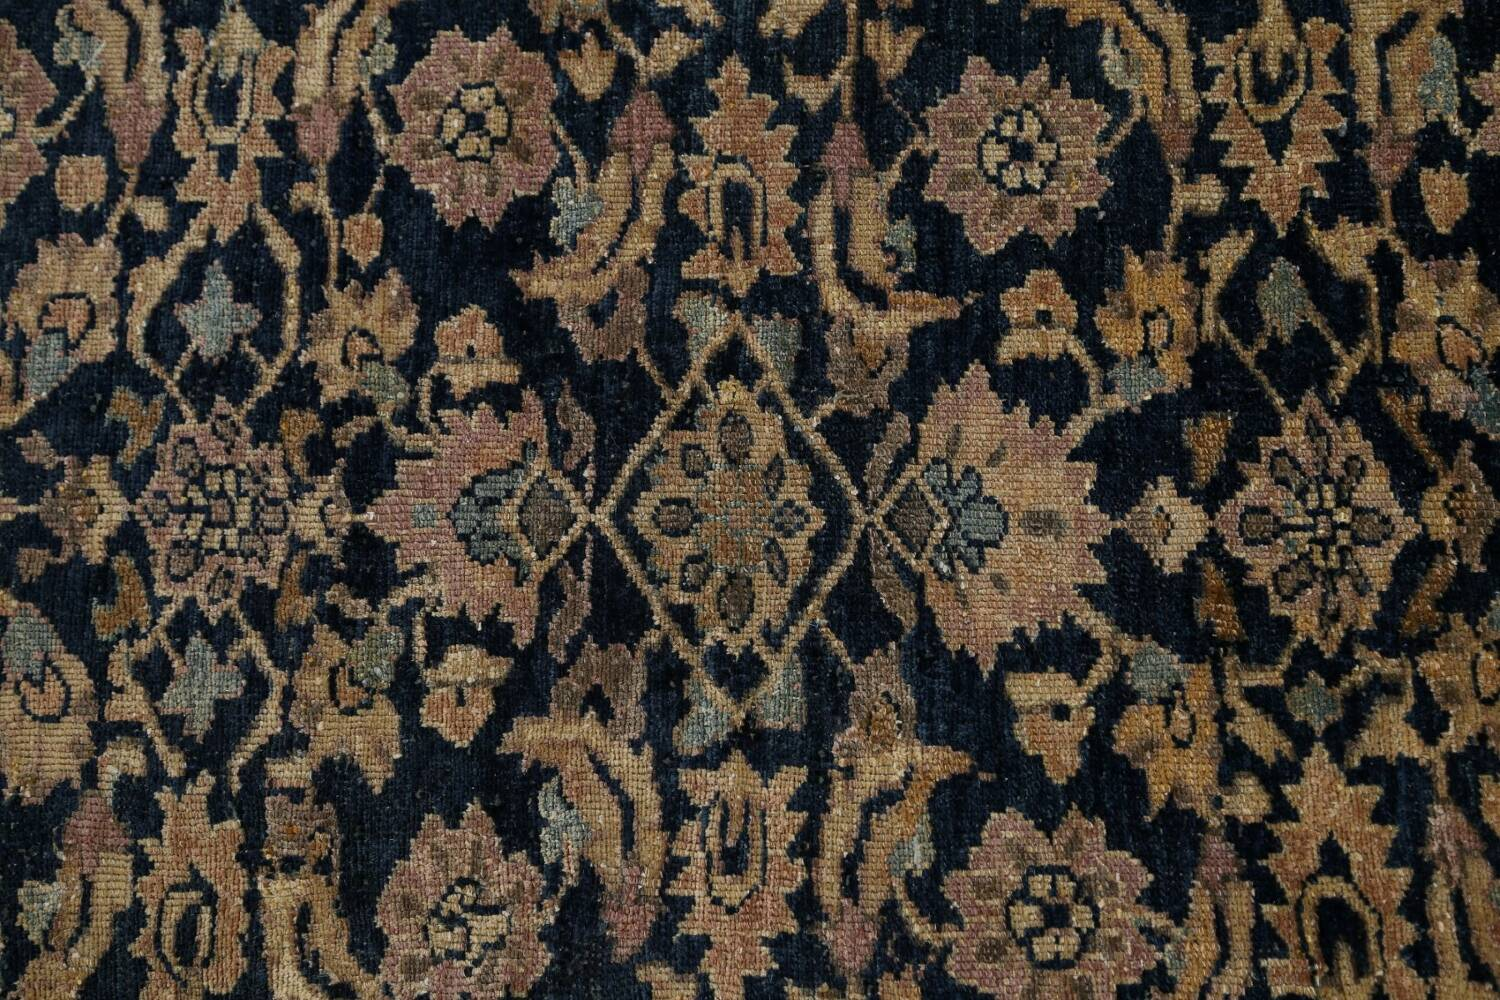 Pre-1900 Antique Vegetable Dye Malayer Persian Area Rug 9x12 image 10